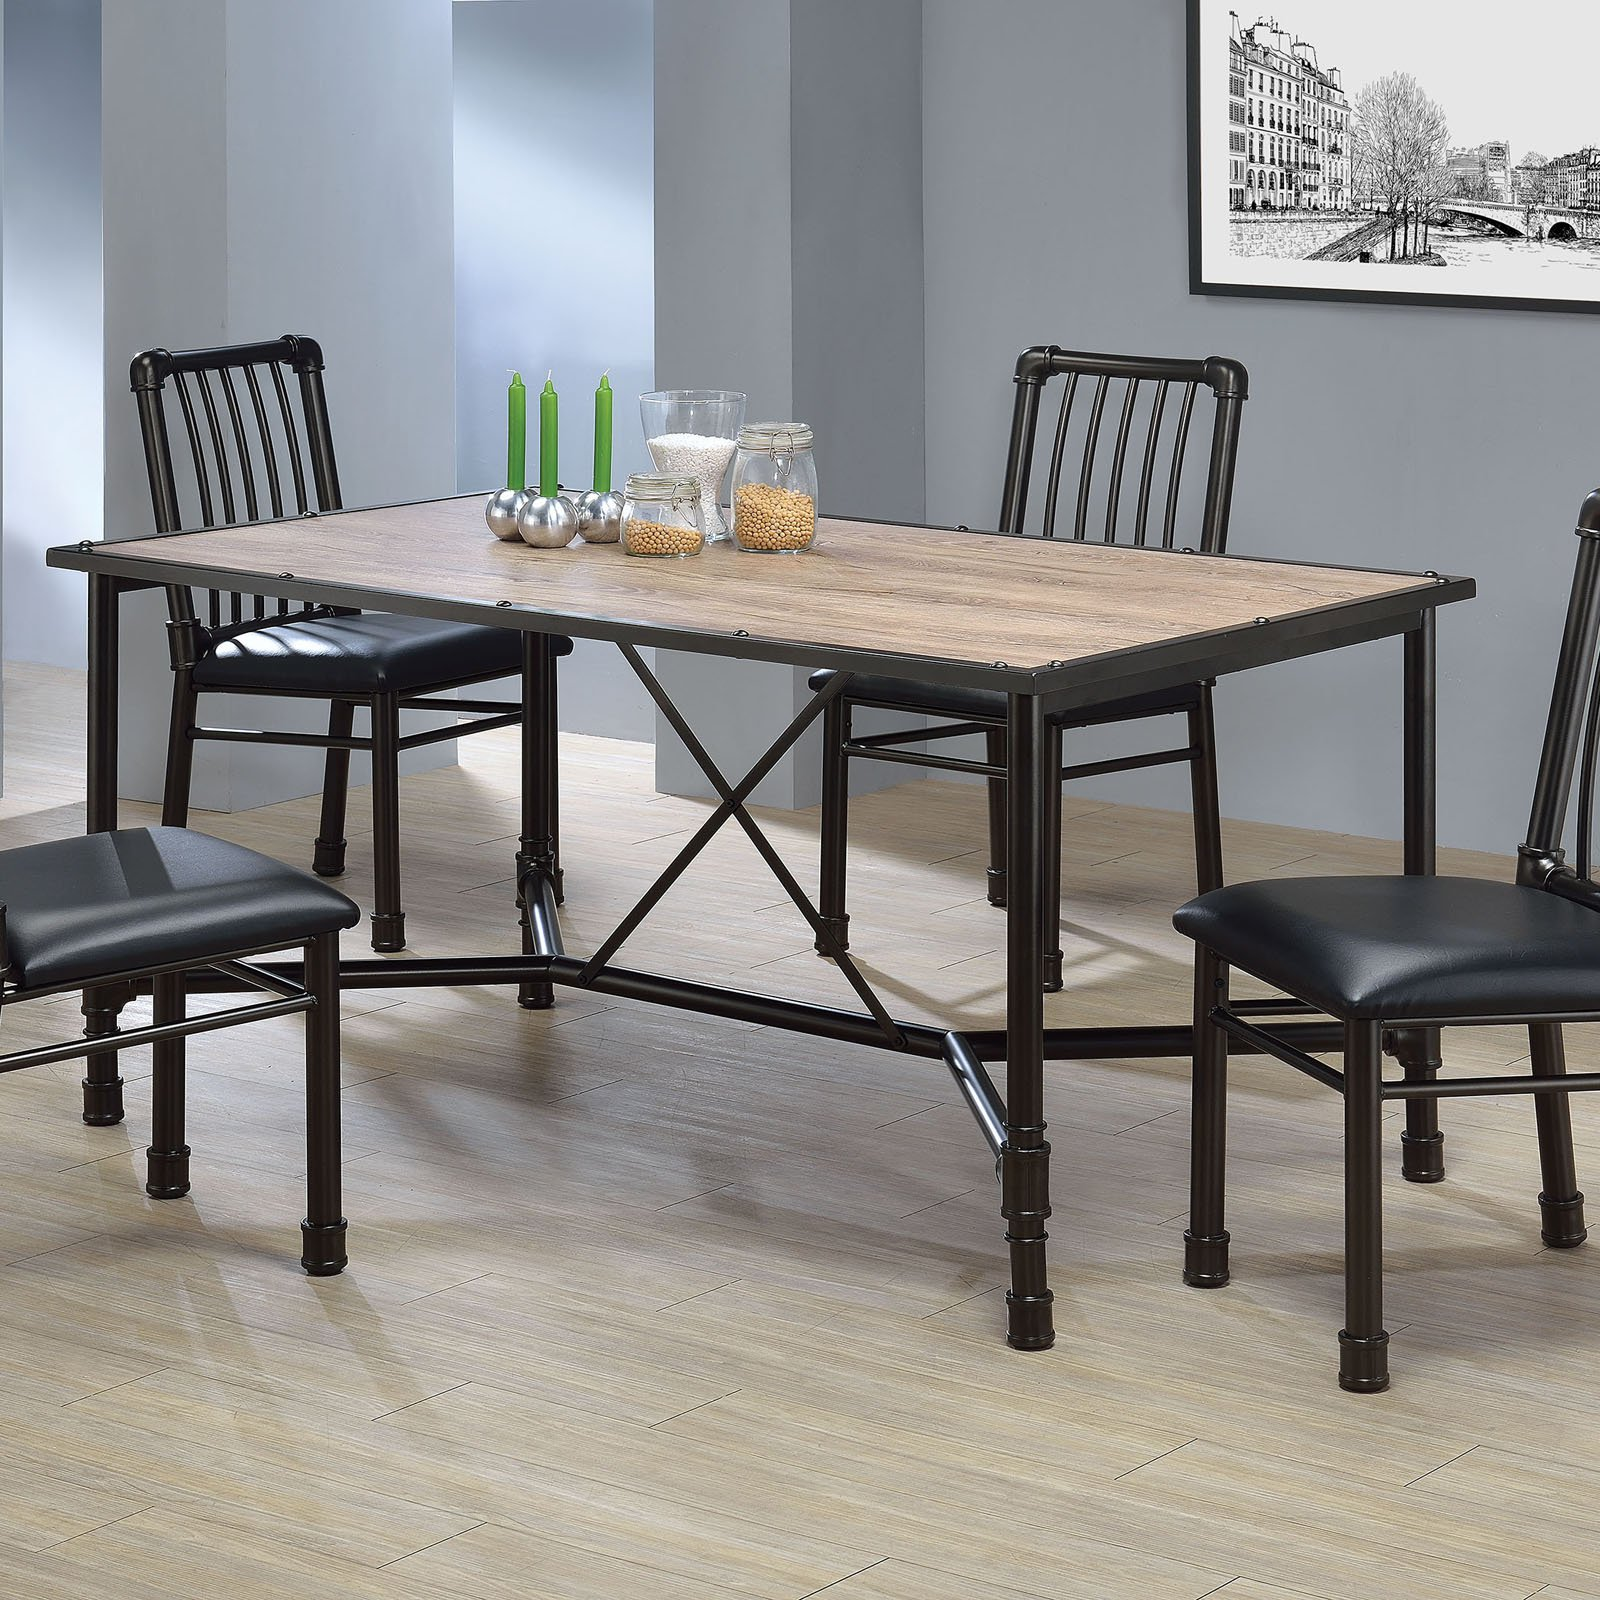 Dining Room Furniture Rustic Acme Caitlin Dining Table Rustic Oak And Black